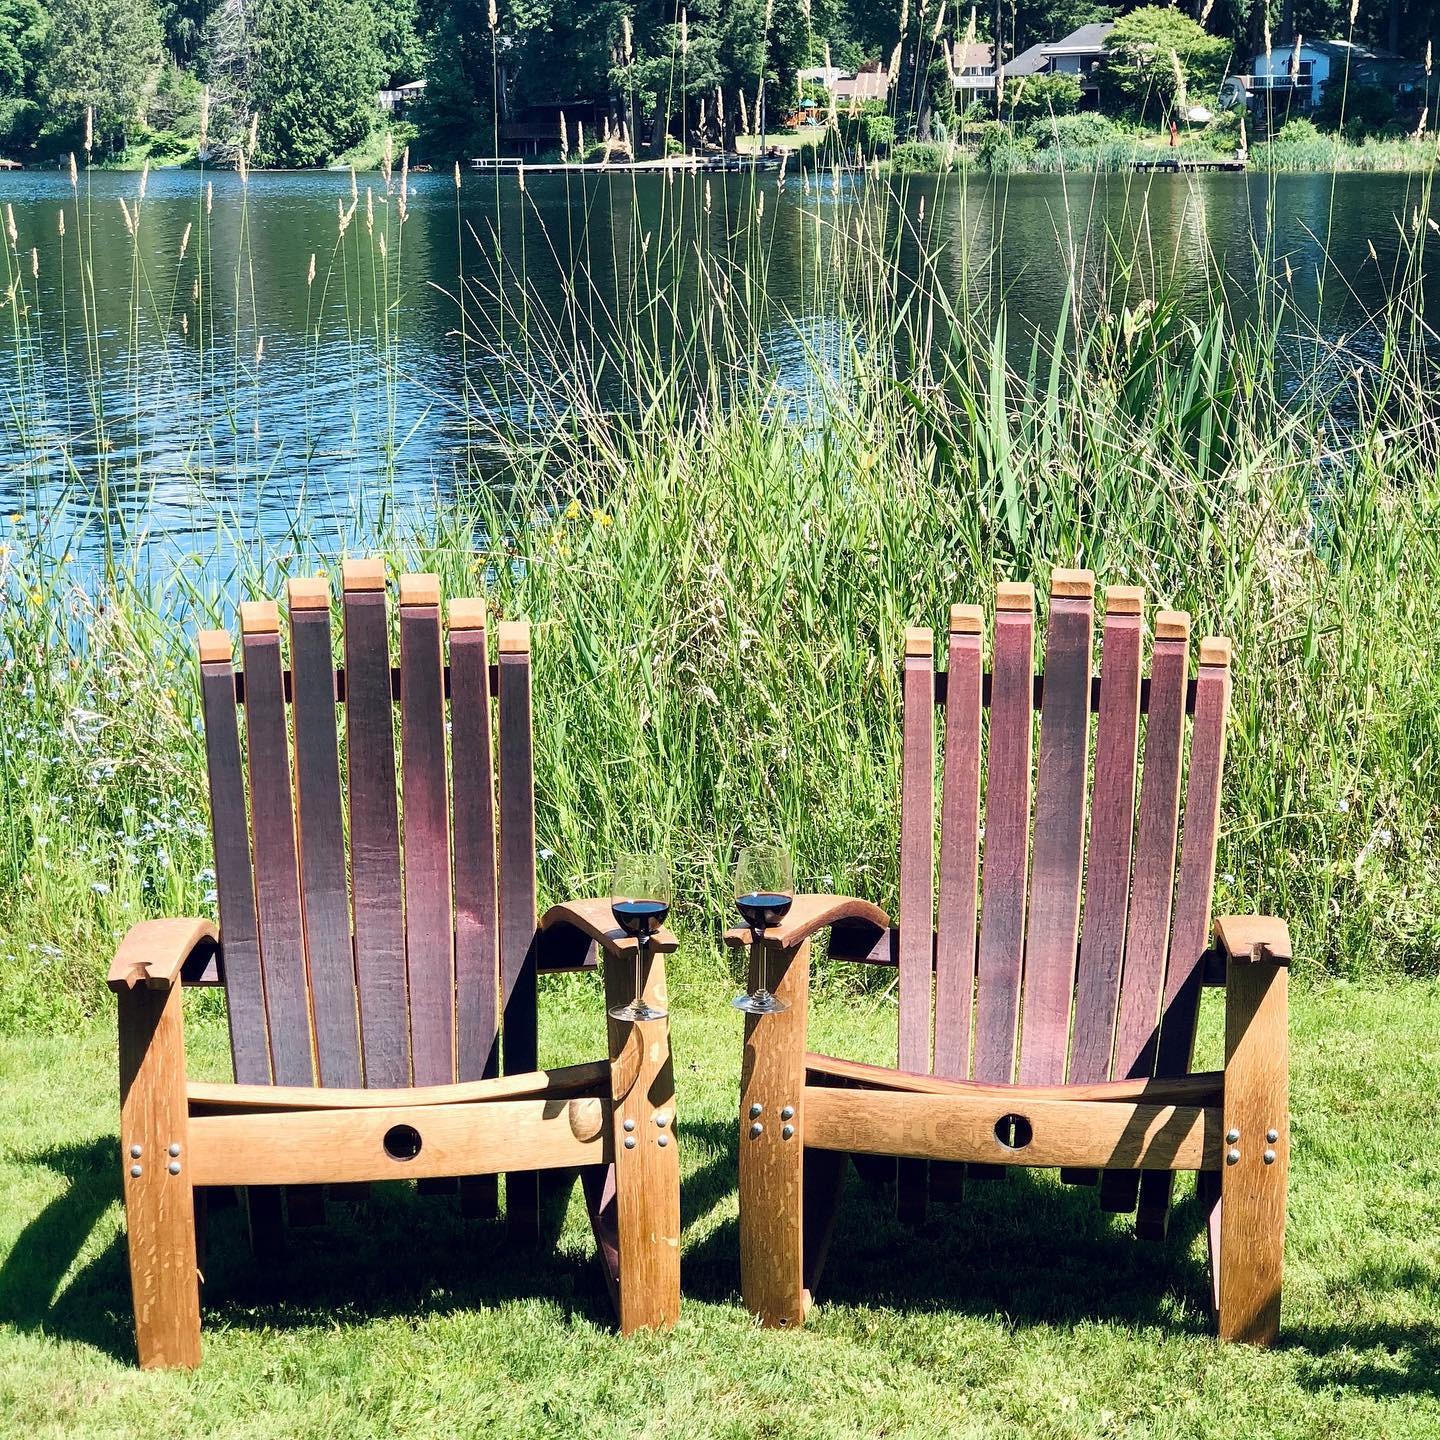 Woodinville Barrel Works - wine barrel furniture - lawn chairs